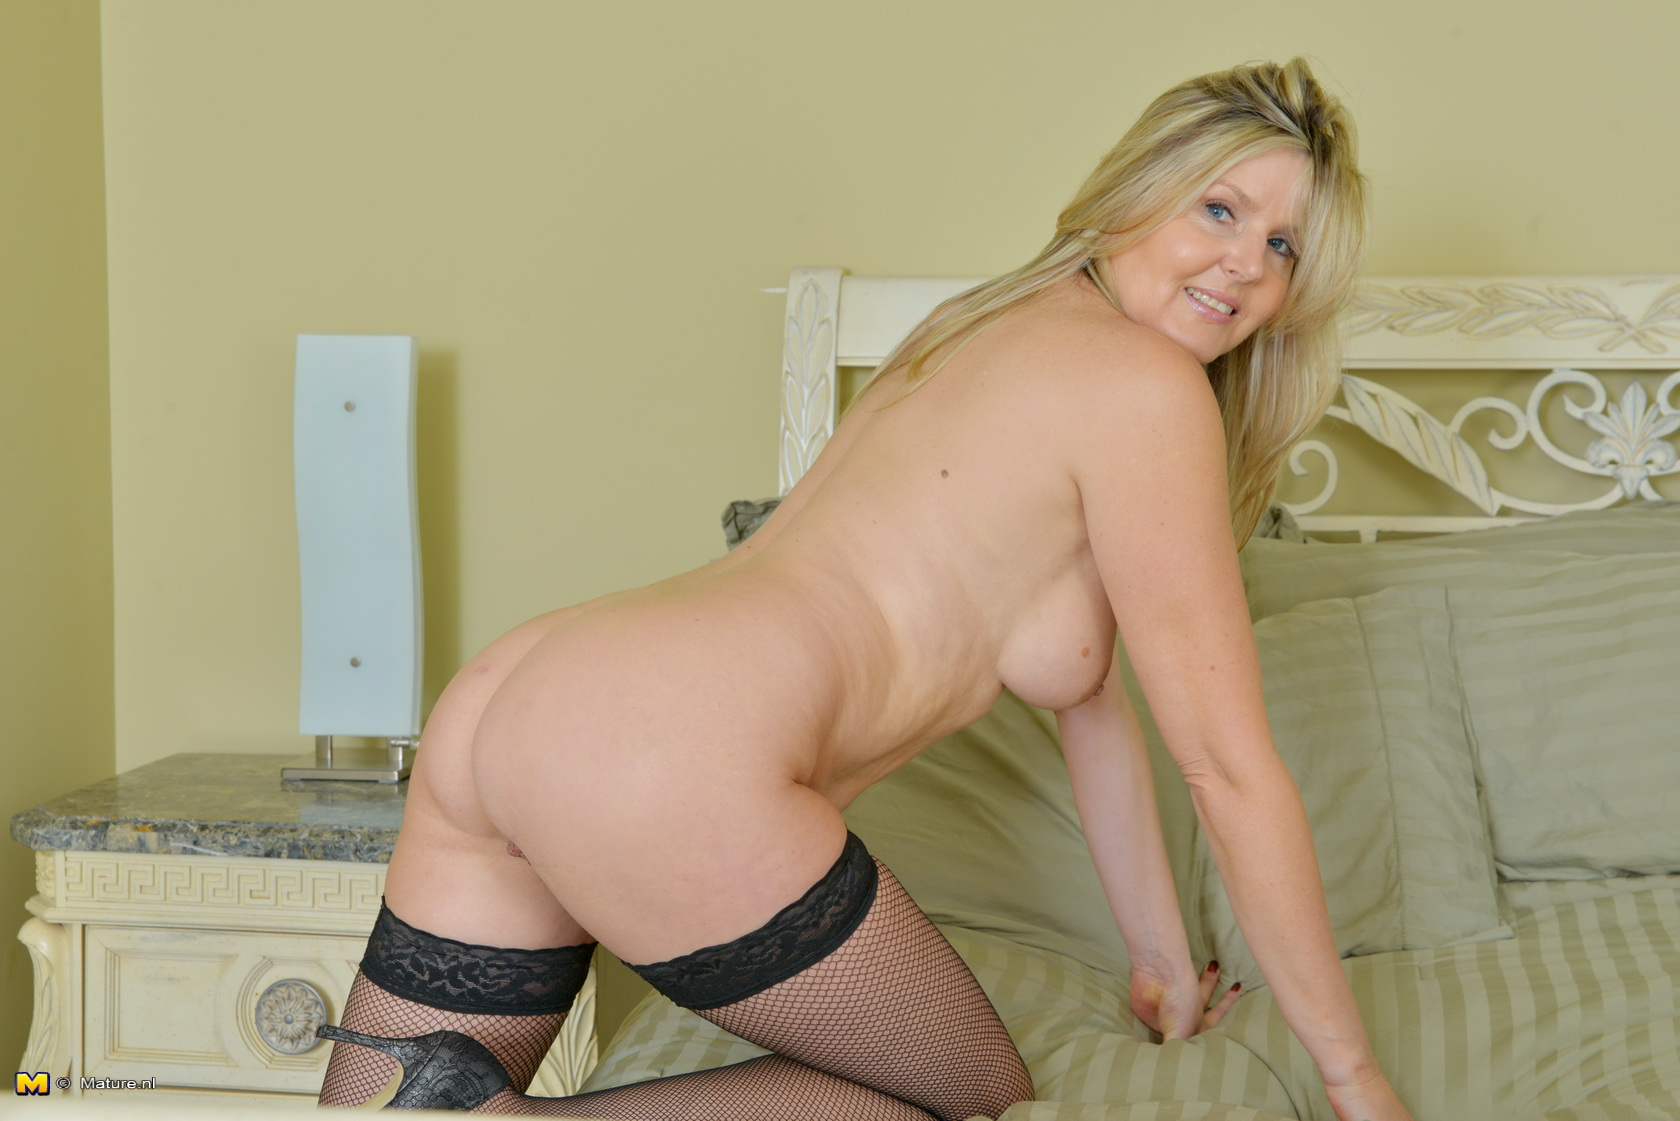 Milfs hot and naughty